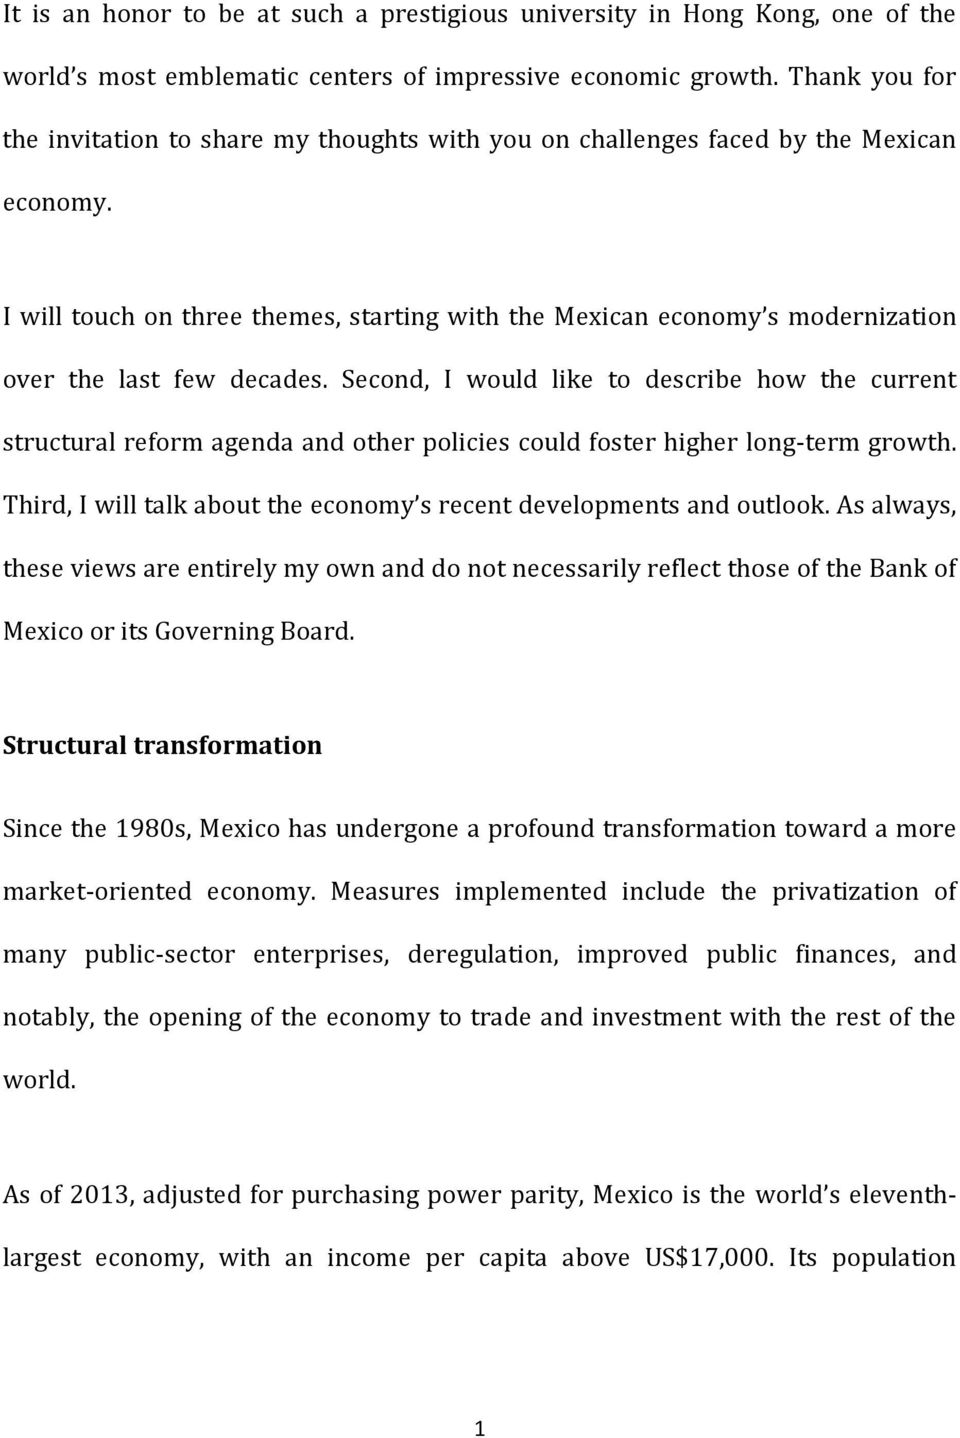 I will touch on three themes, starting with the Mexican economy s modernization over the last few decades.